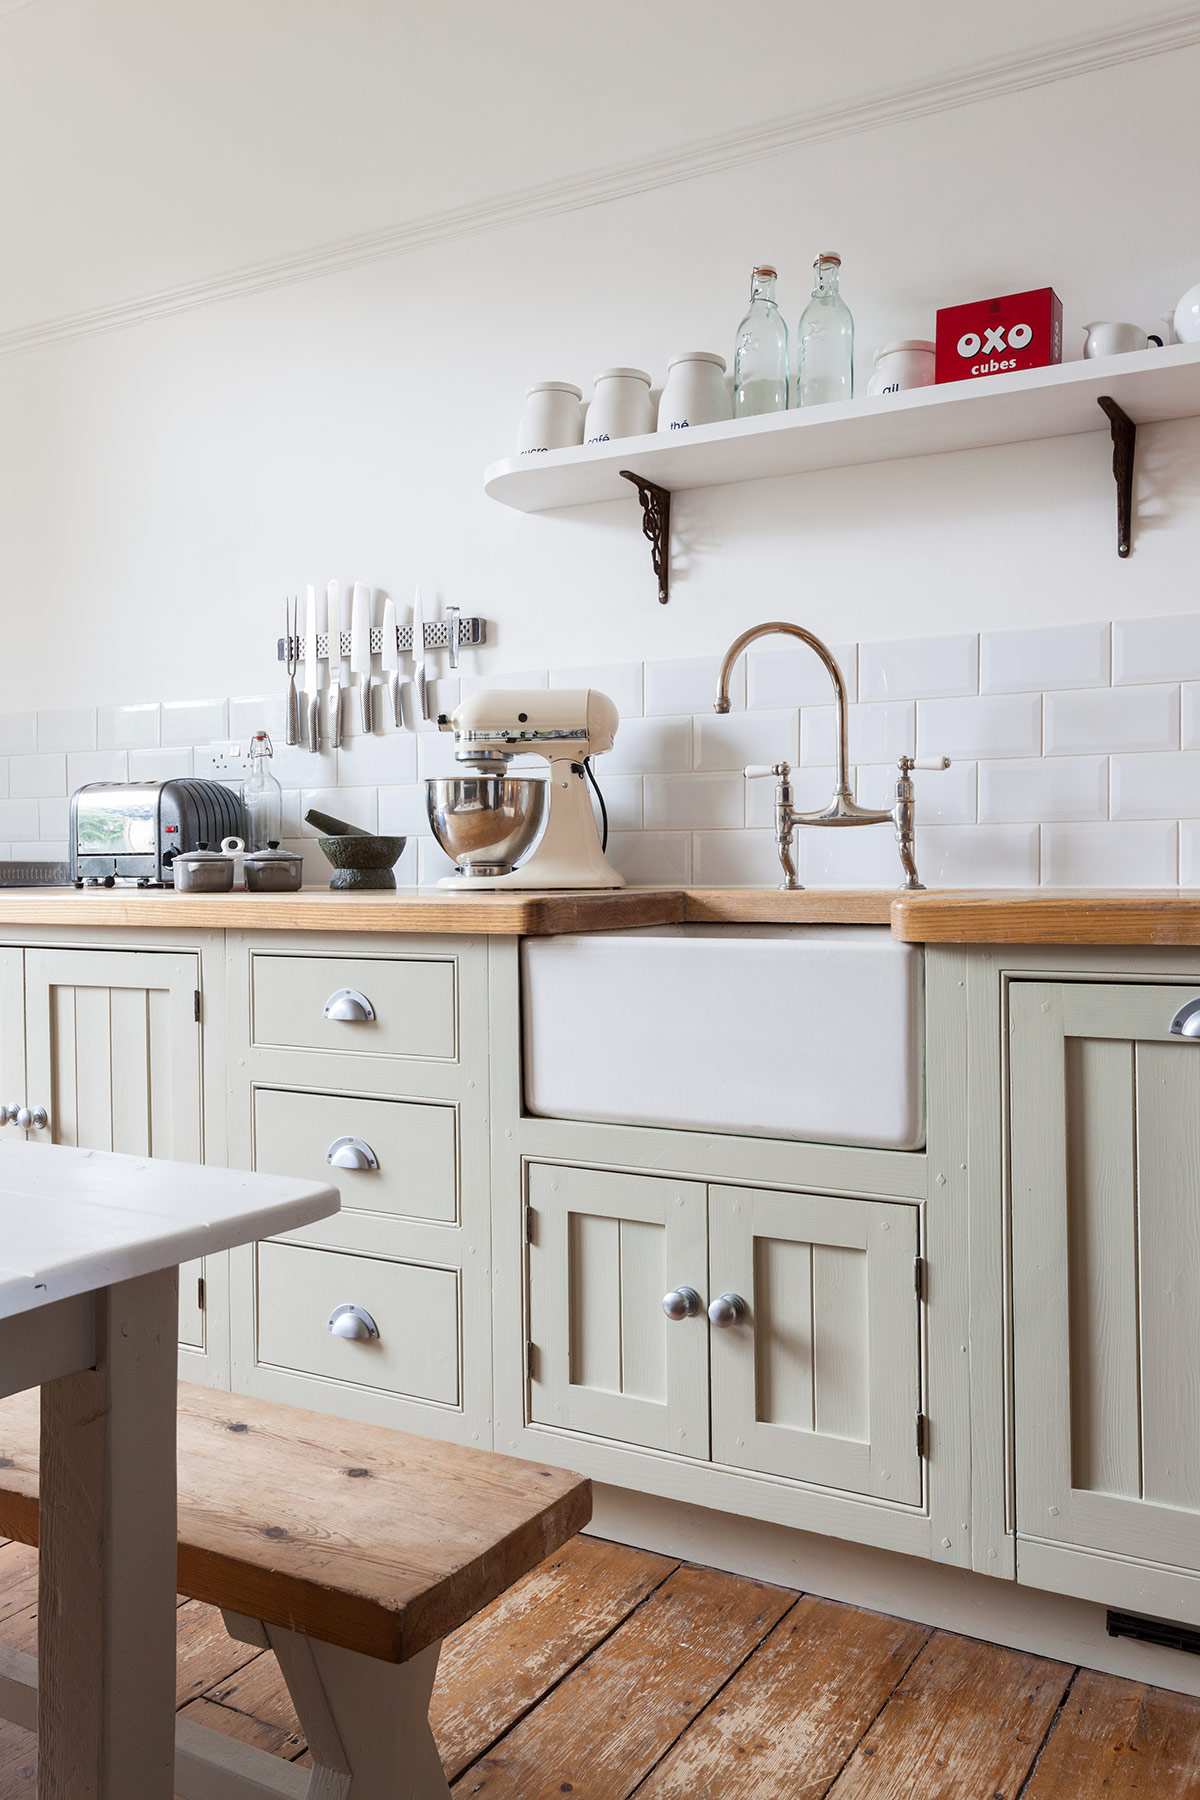 The Top Kitchen Trends of 8, According to Houzz  Real Simple